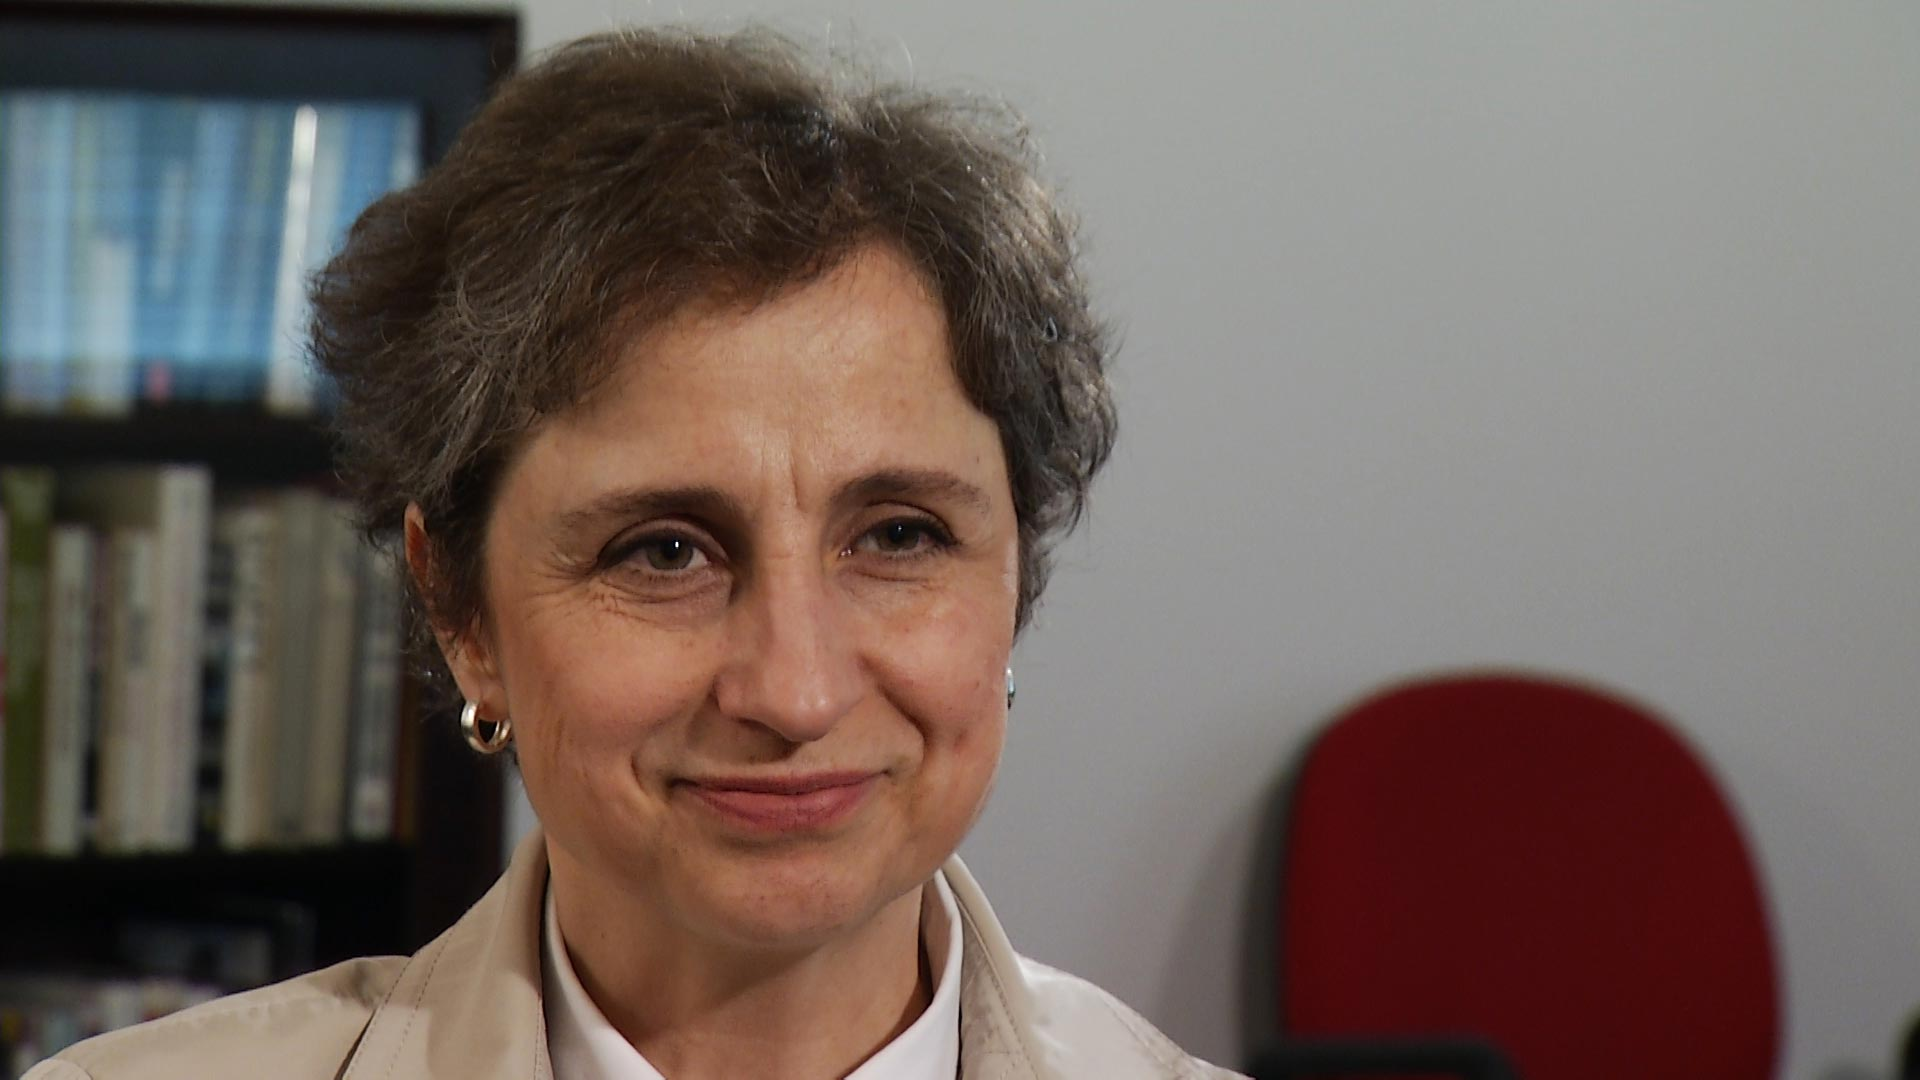 Mexican journalist Carmen Aristegui during an interview with Arizona 360 in October 2018.